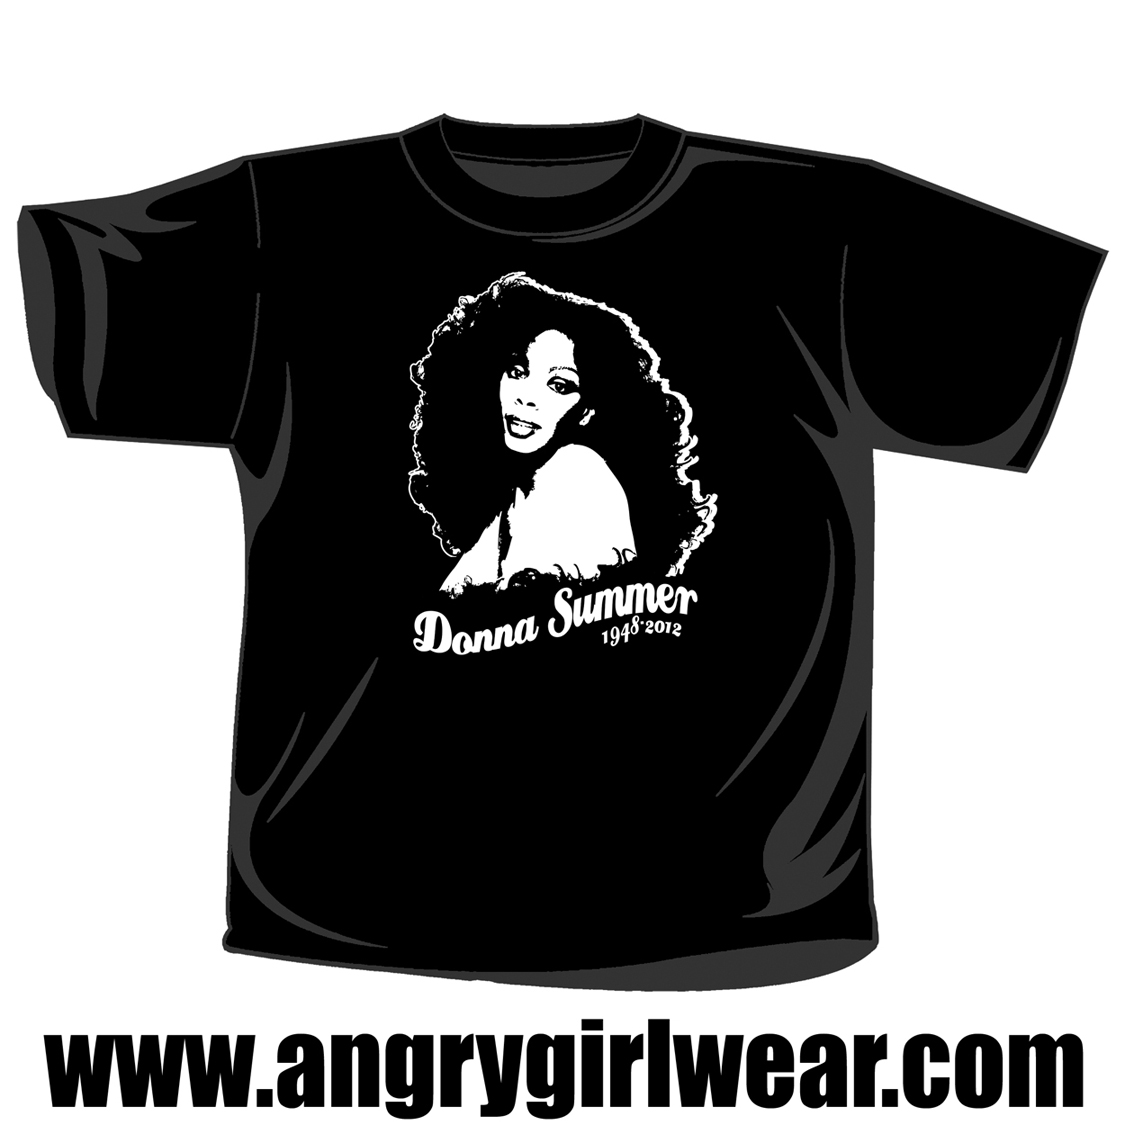 d17ad230921 Donna Summer Tribute - T-shirt. Click to enlarge image(s)